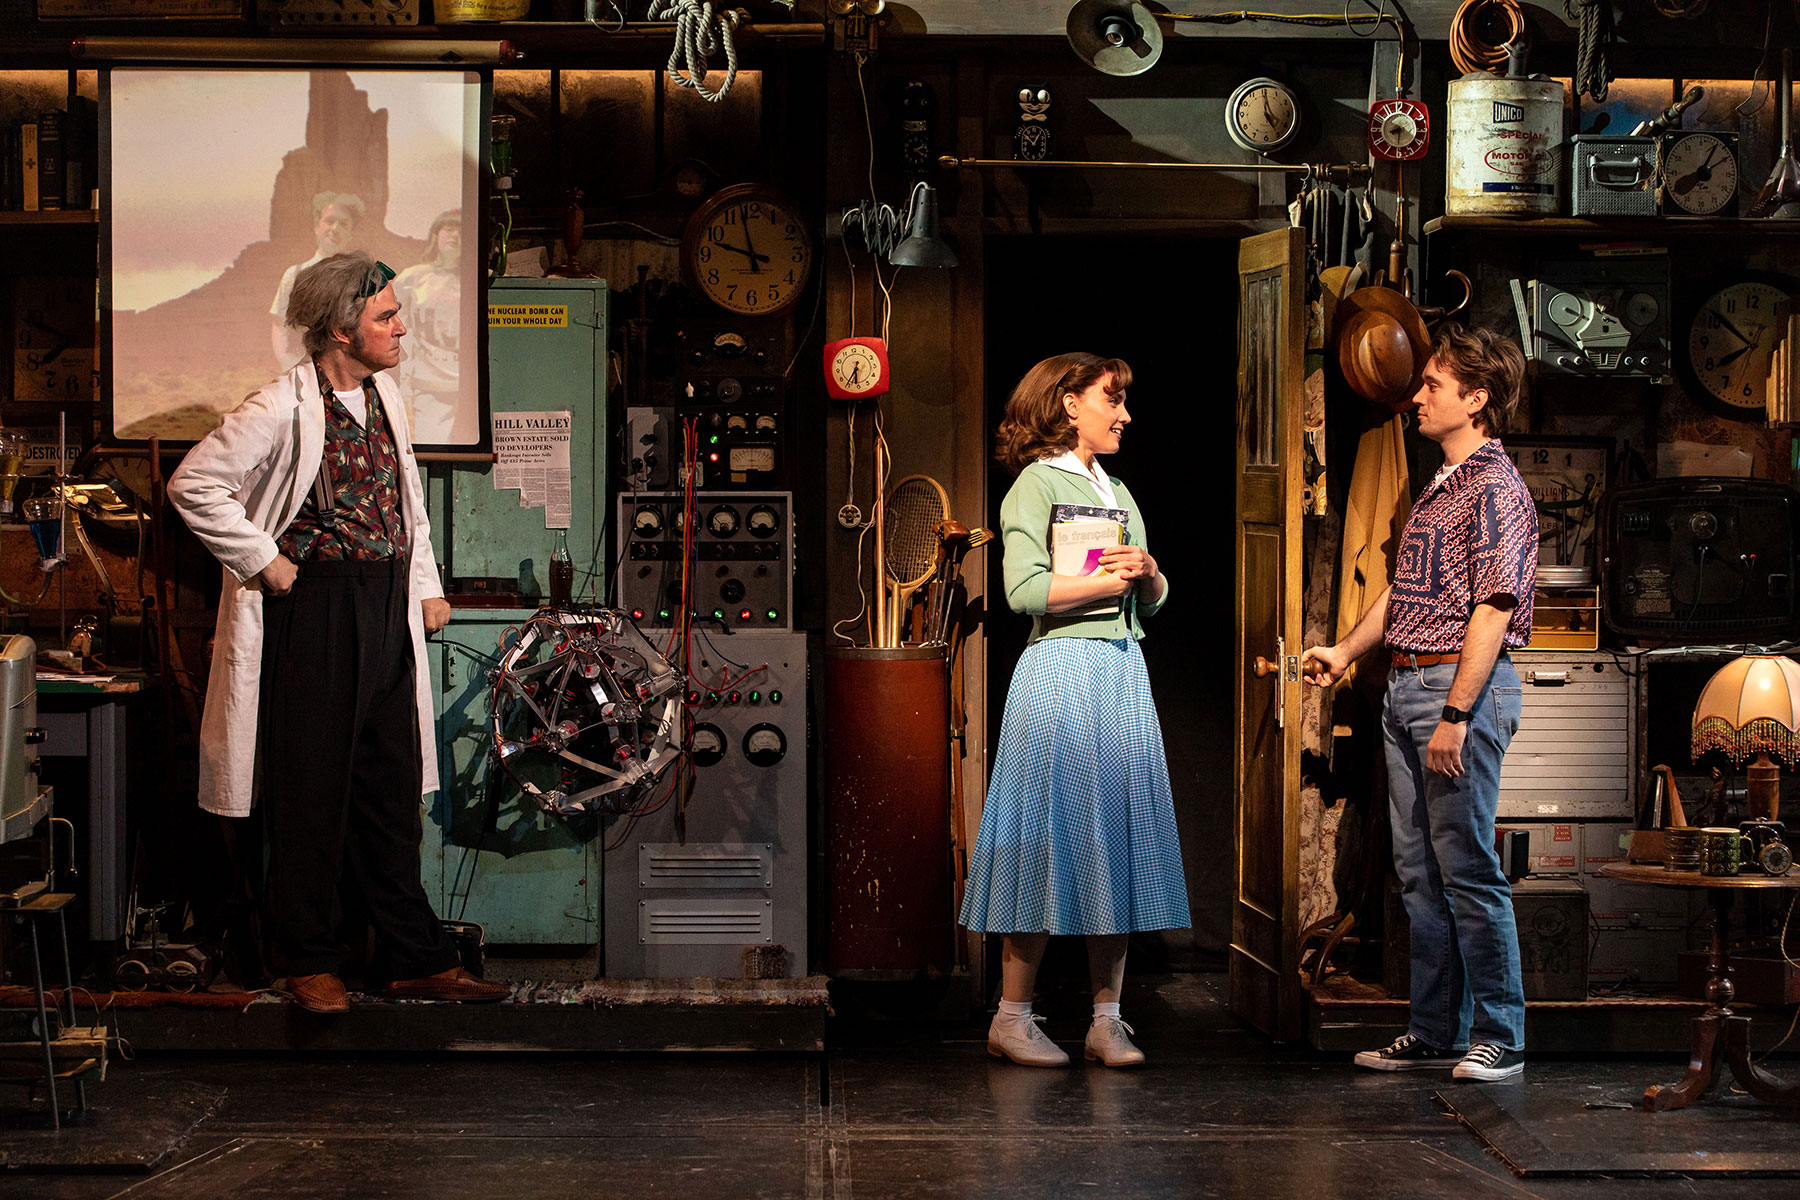 Roger Bart as Doc Brown, Rosanna Hyland as Lorraine Baines & Olly Dobson as Marty McFly in Back to the Future the Musical, credit Sean Ebsworth Barnes